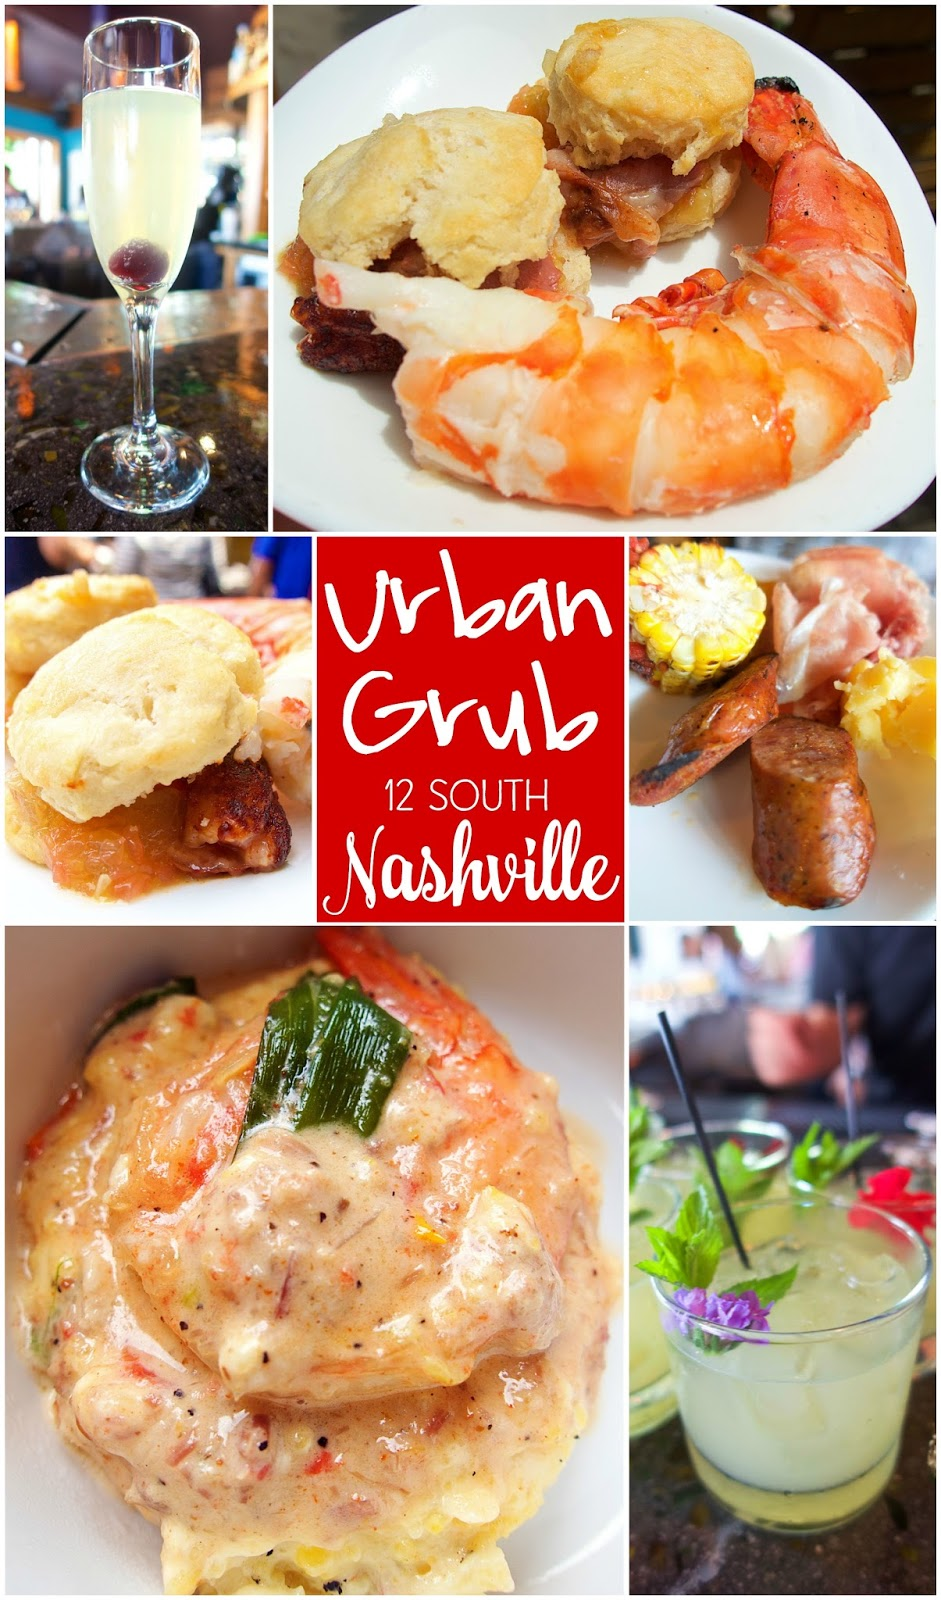 Urban Grub - 12 South Nashville - homemade charcuterie, fresh fish and dry aged steaks. They have something for everyone!